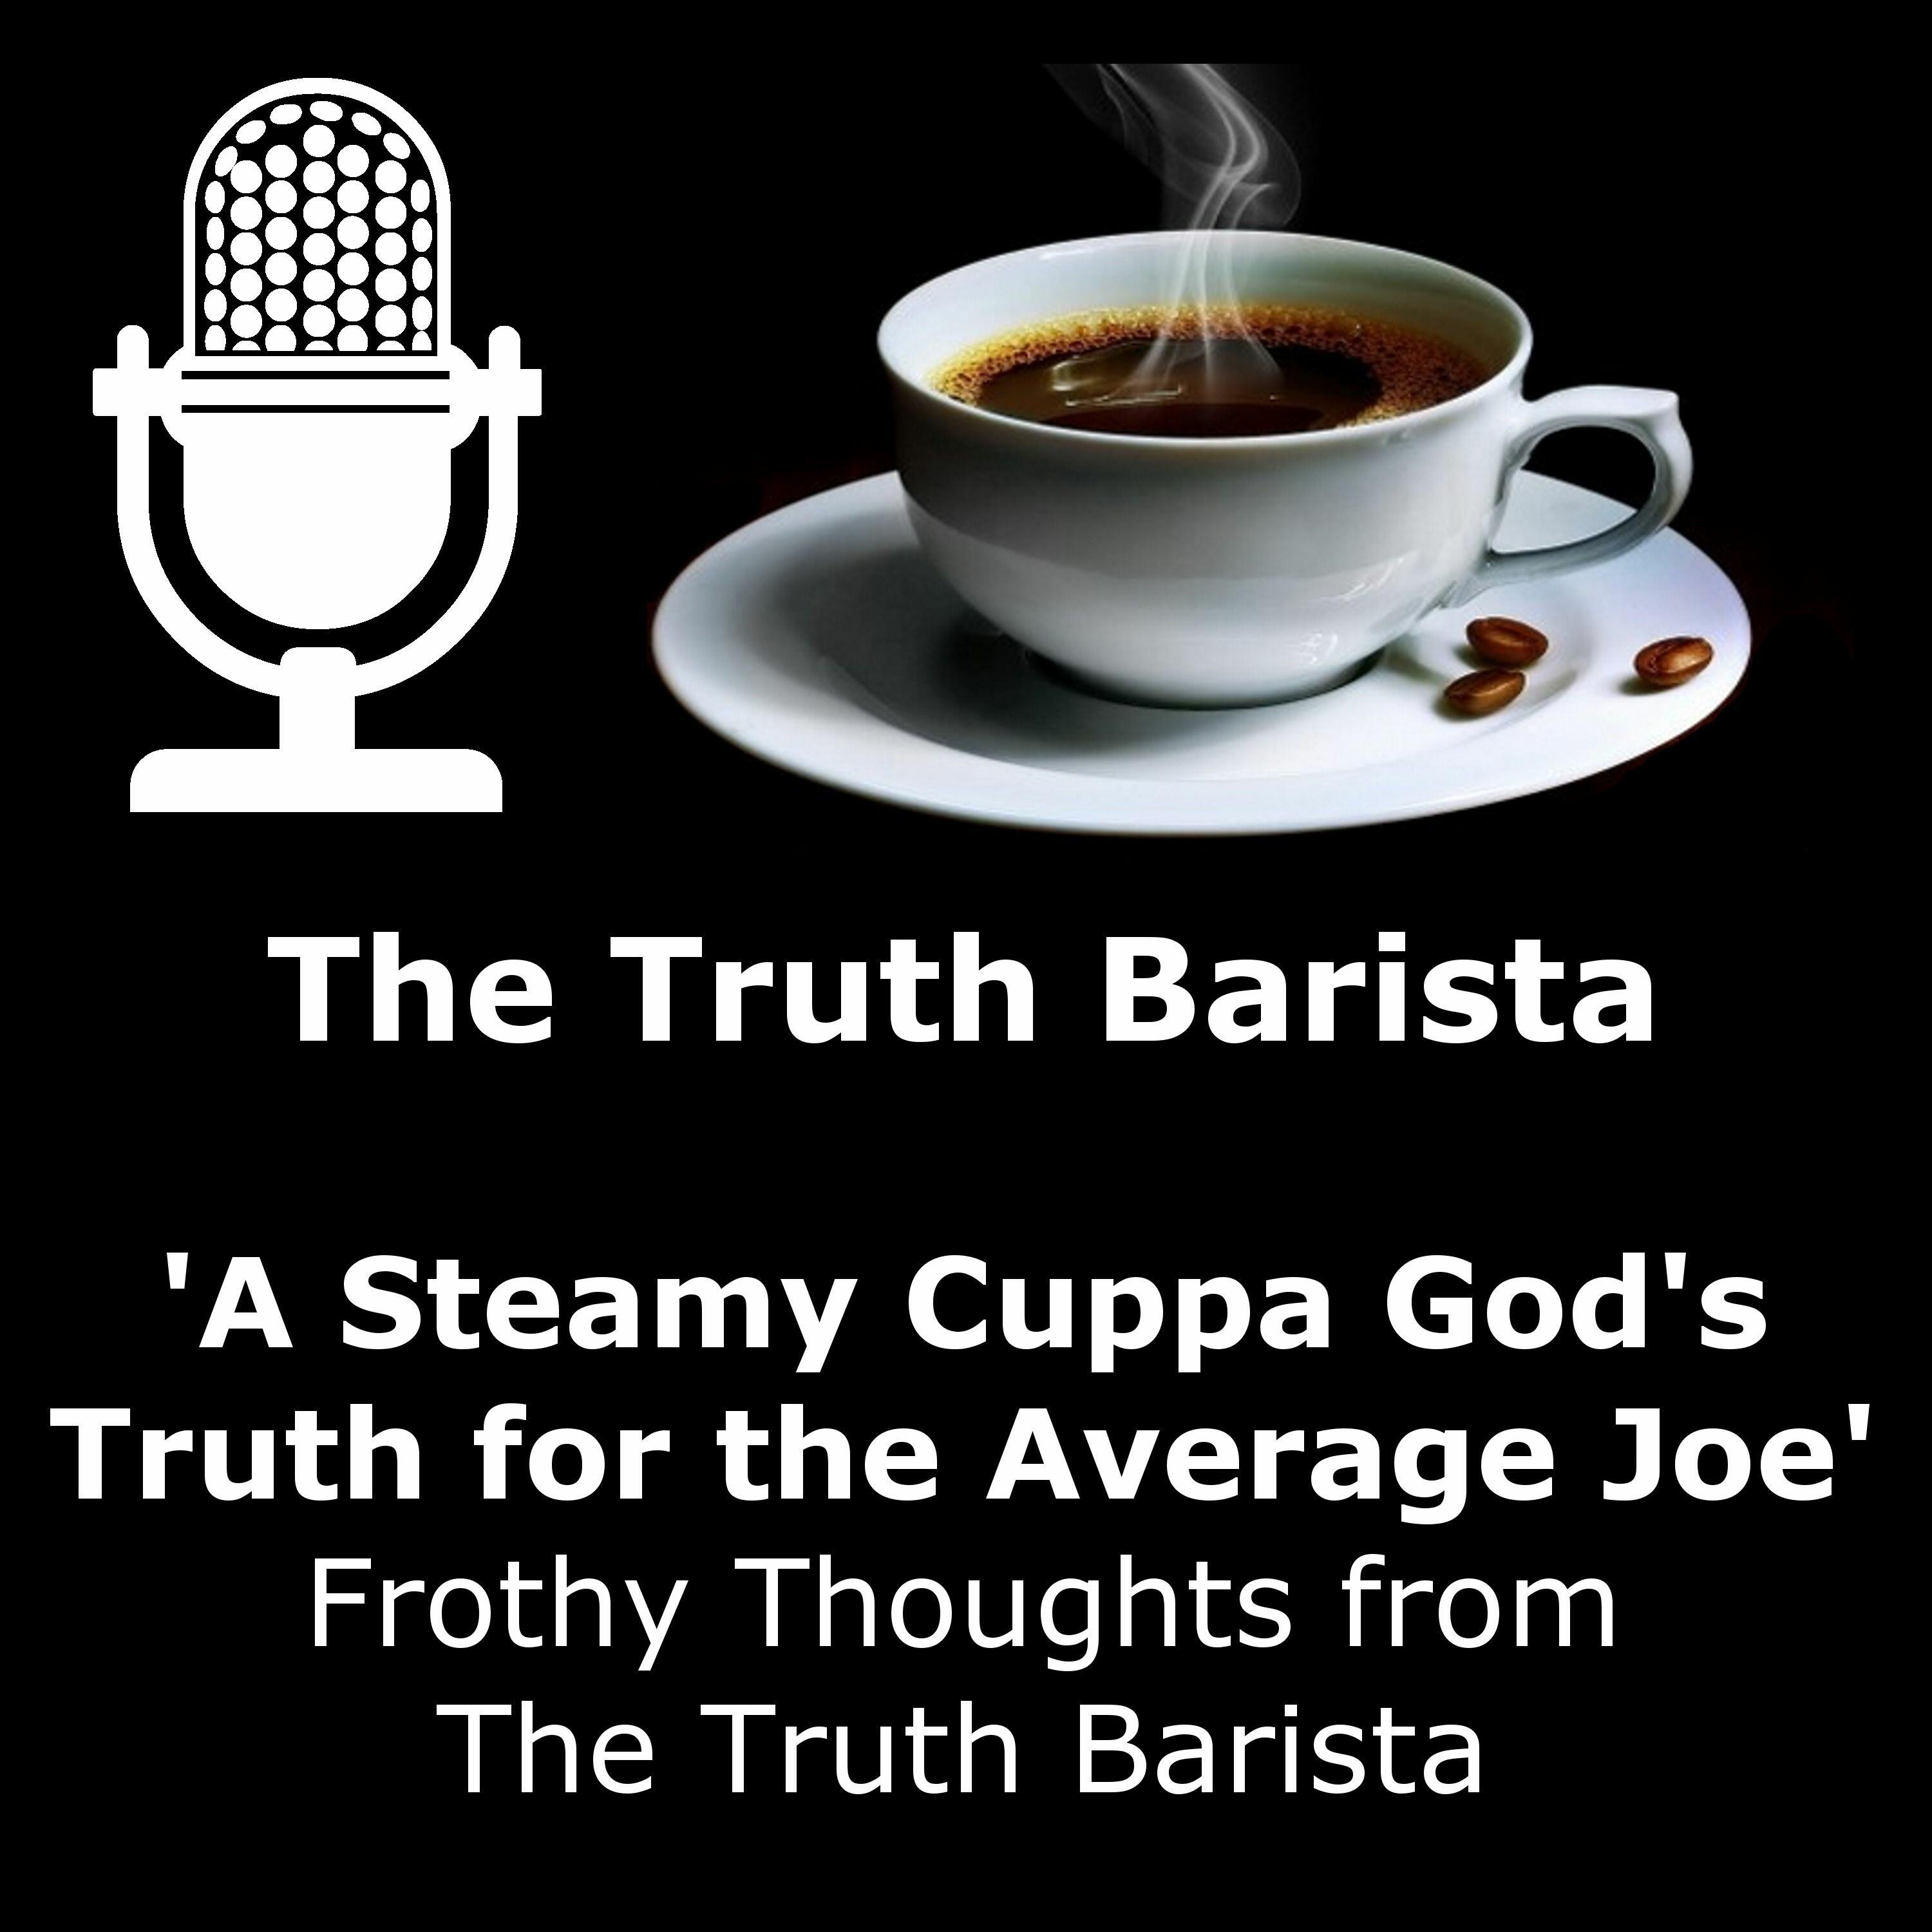 The Truth Barista